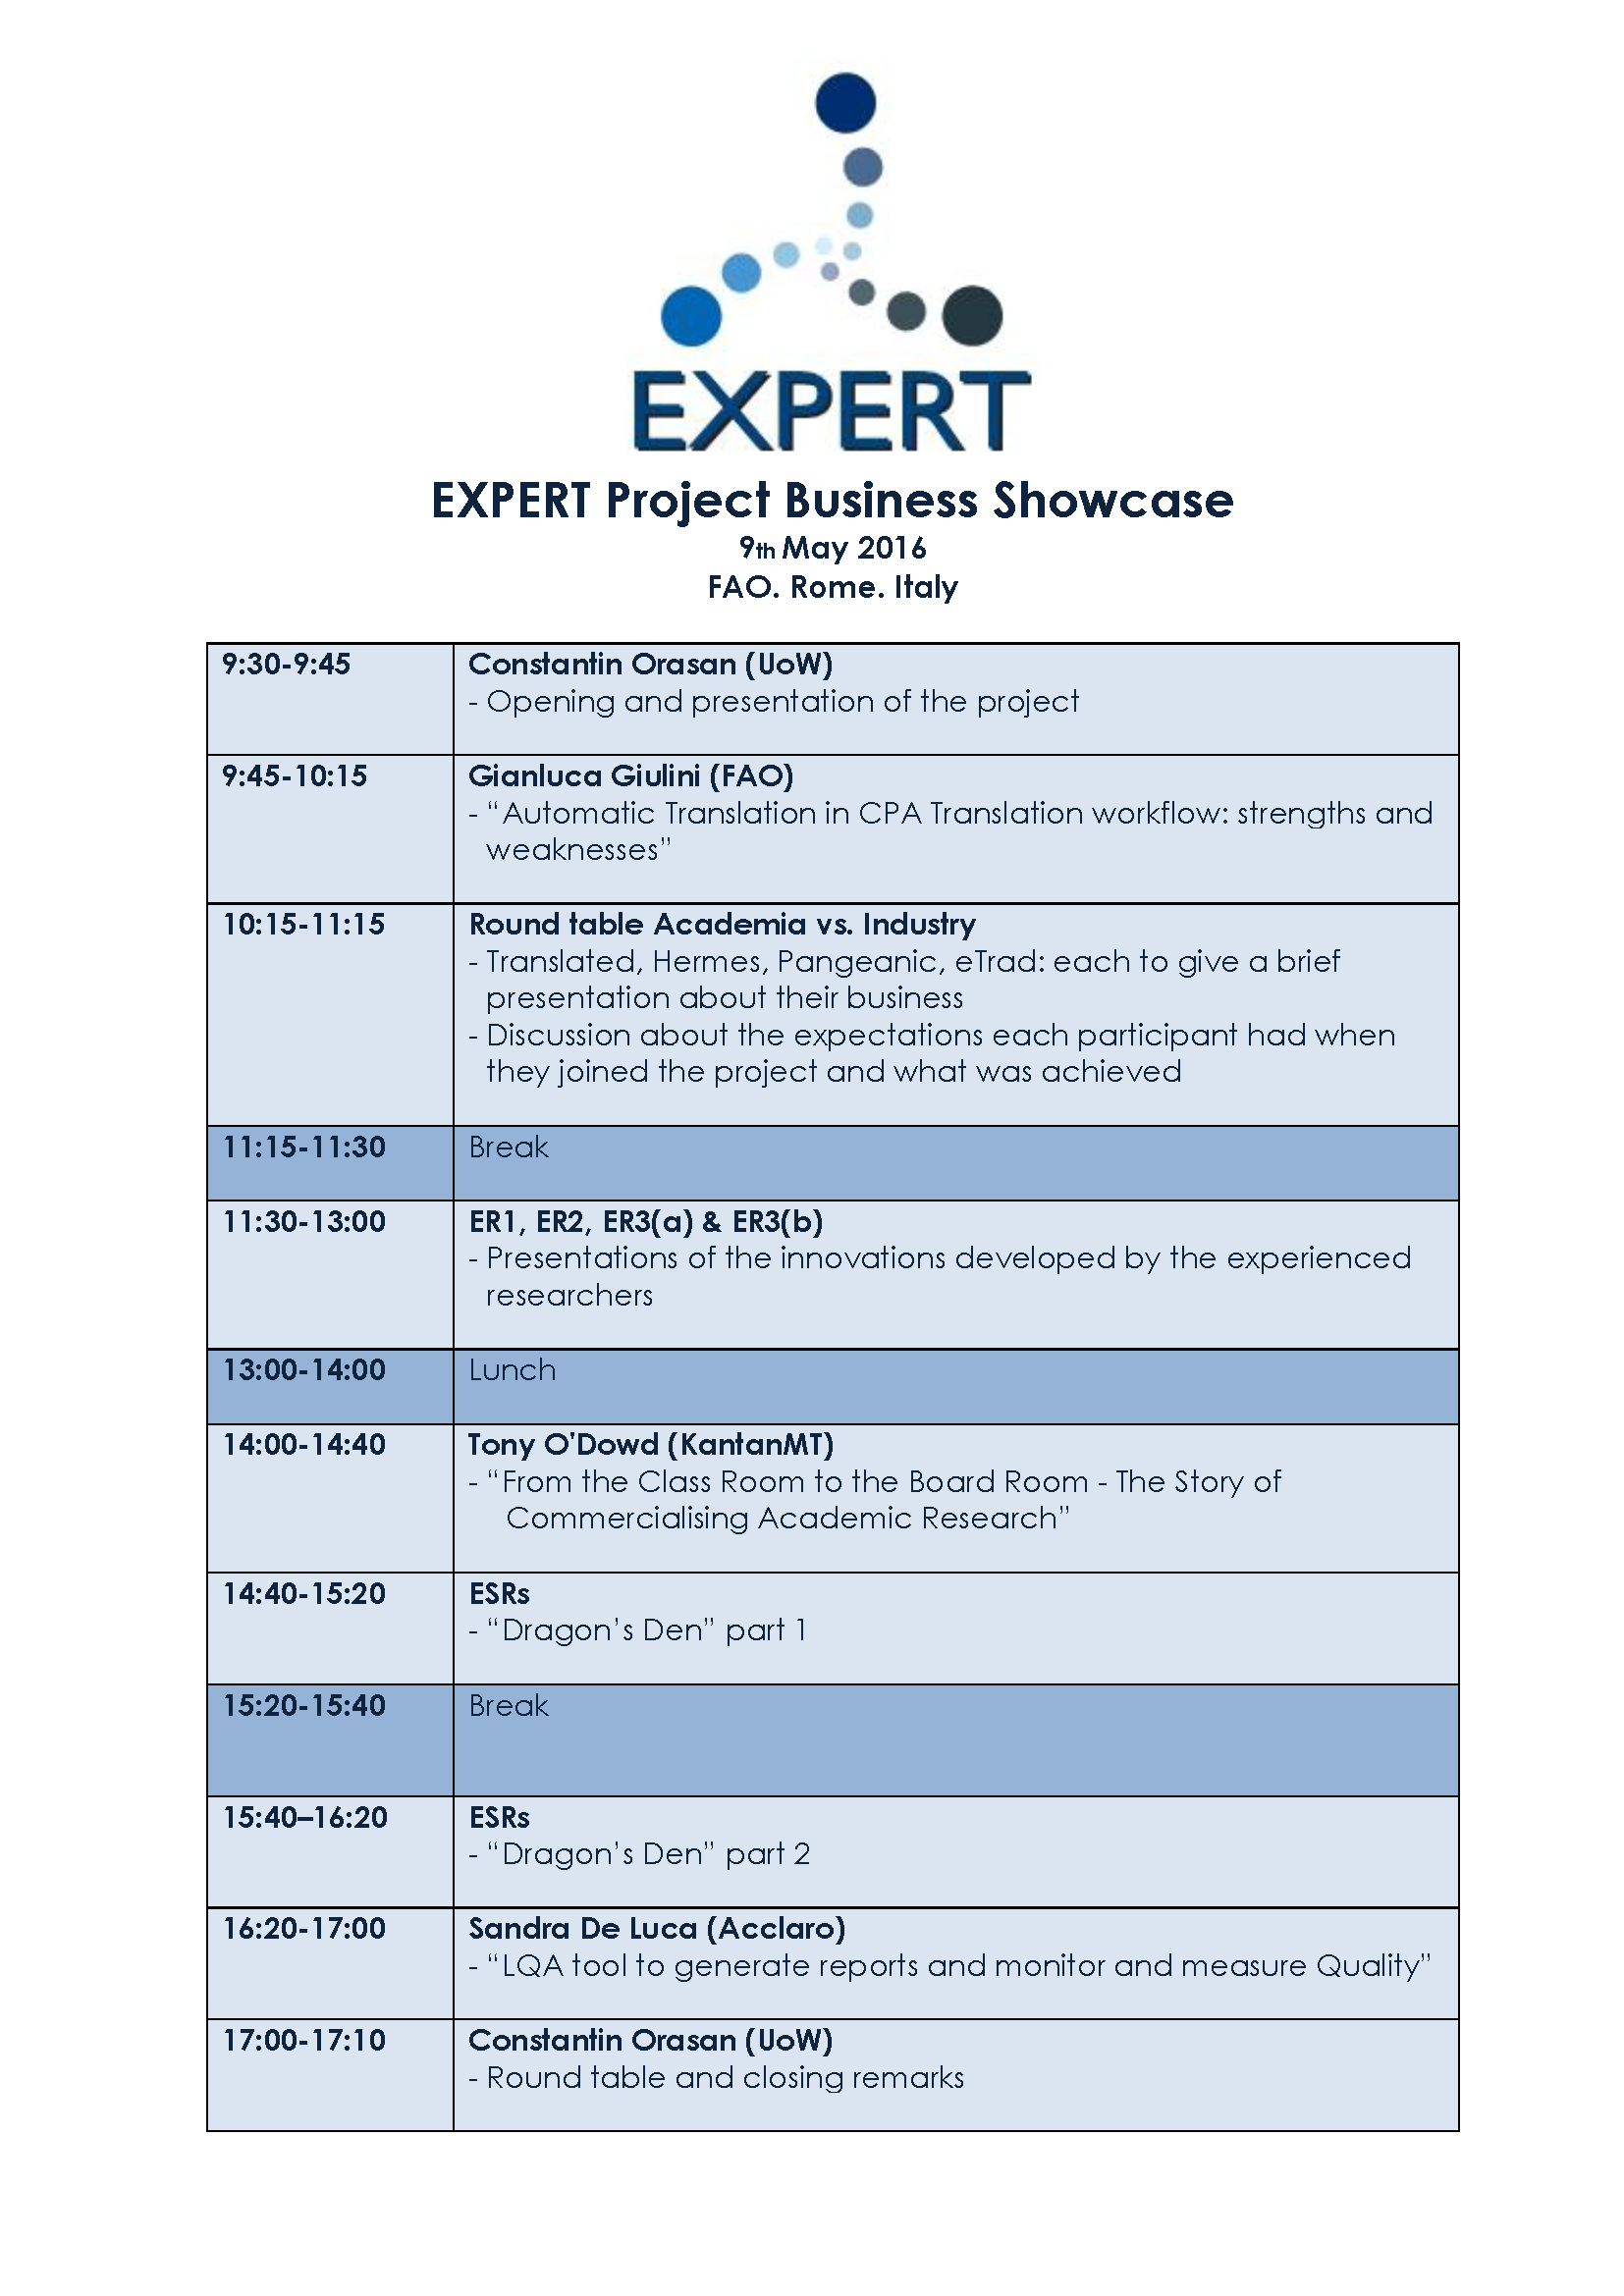 EXPERT Project Business Showcase